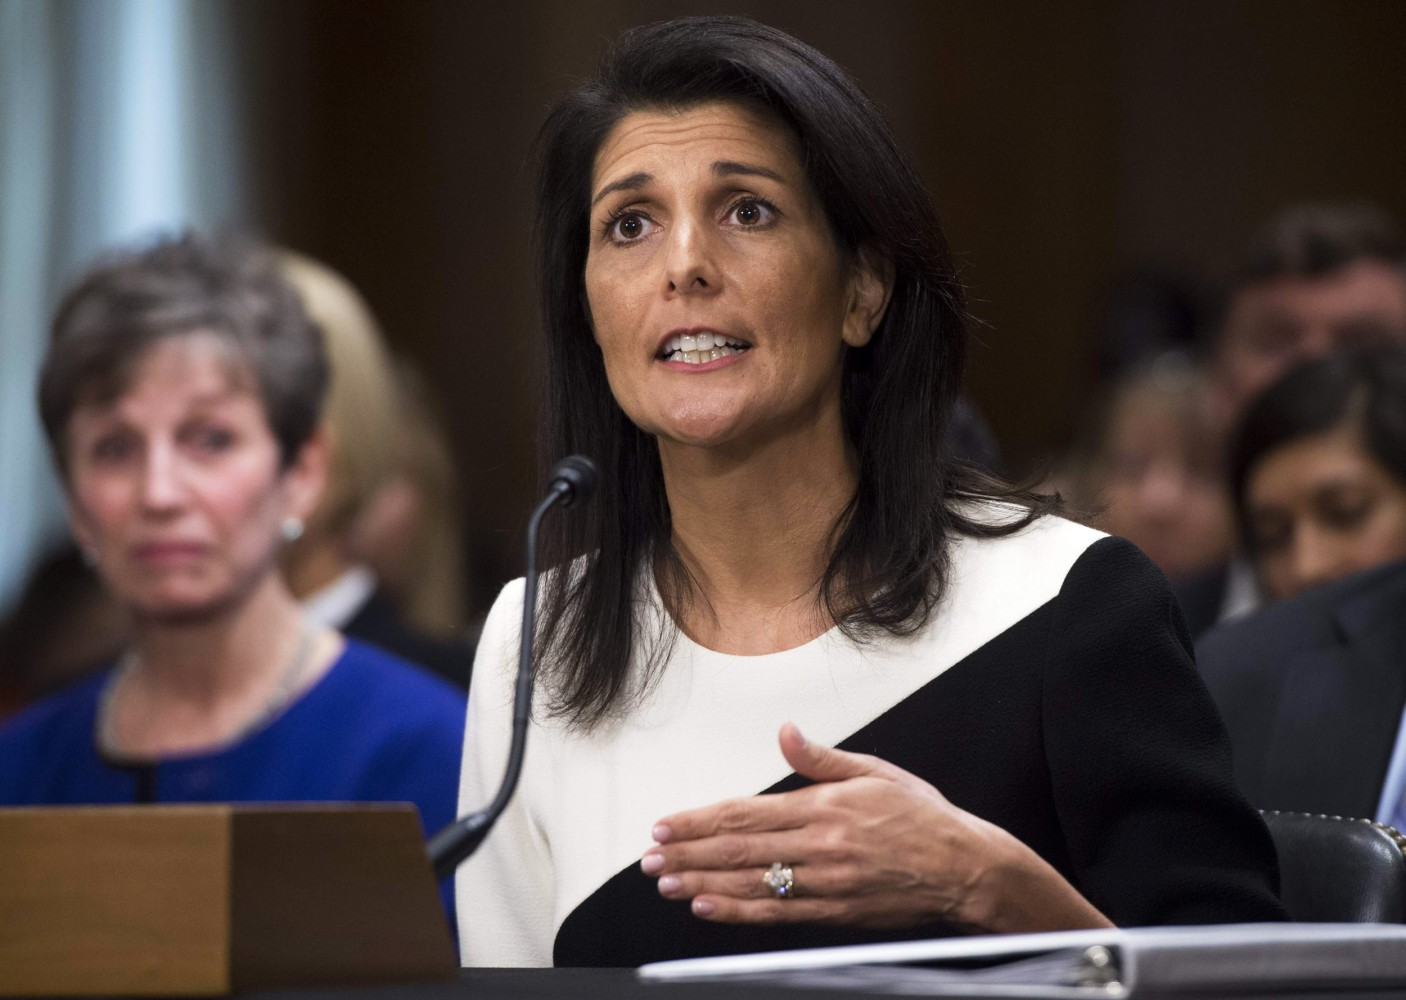 Image South Carolina Governor Nikki Haley testifies during her confirmation hearing for US Ambassador to the United Nations before the Senate Foreign Relations committee on Capitol Hill in Washington D.C. on Jan.18 2017